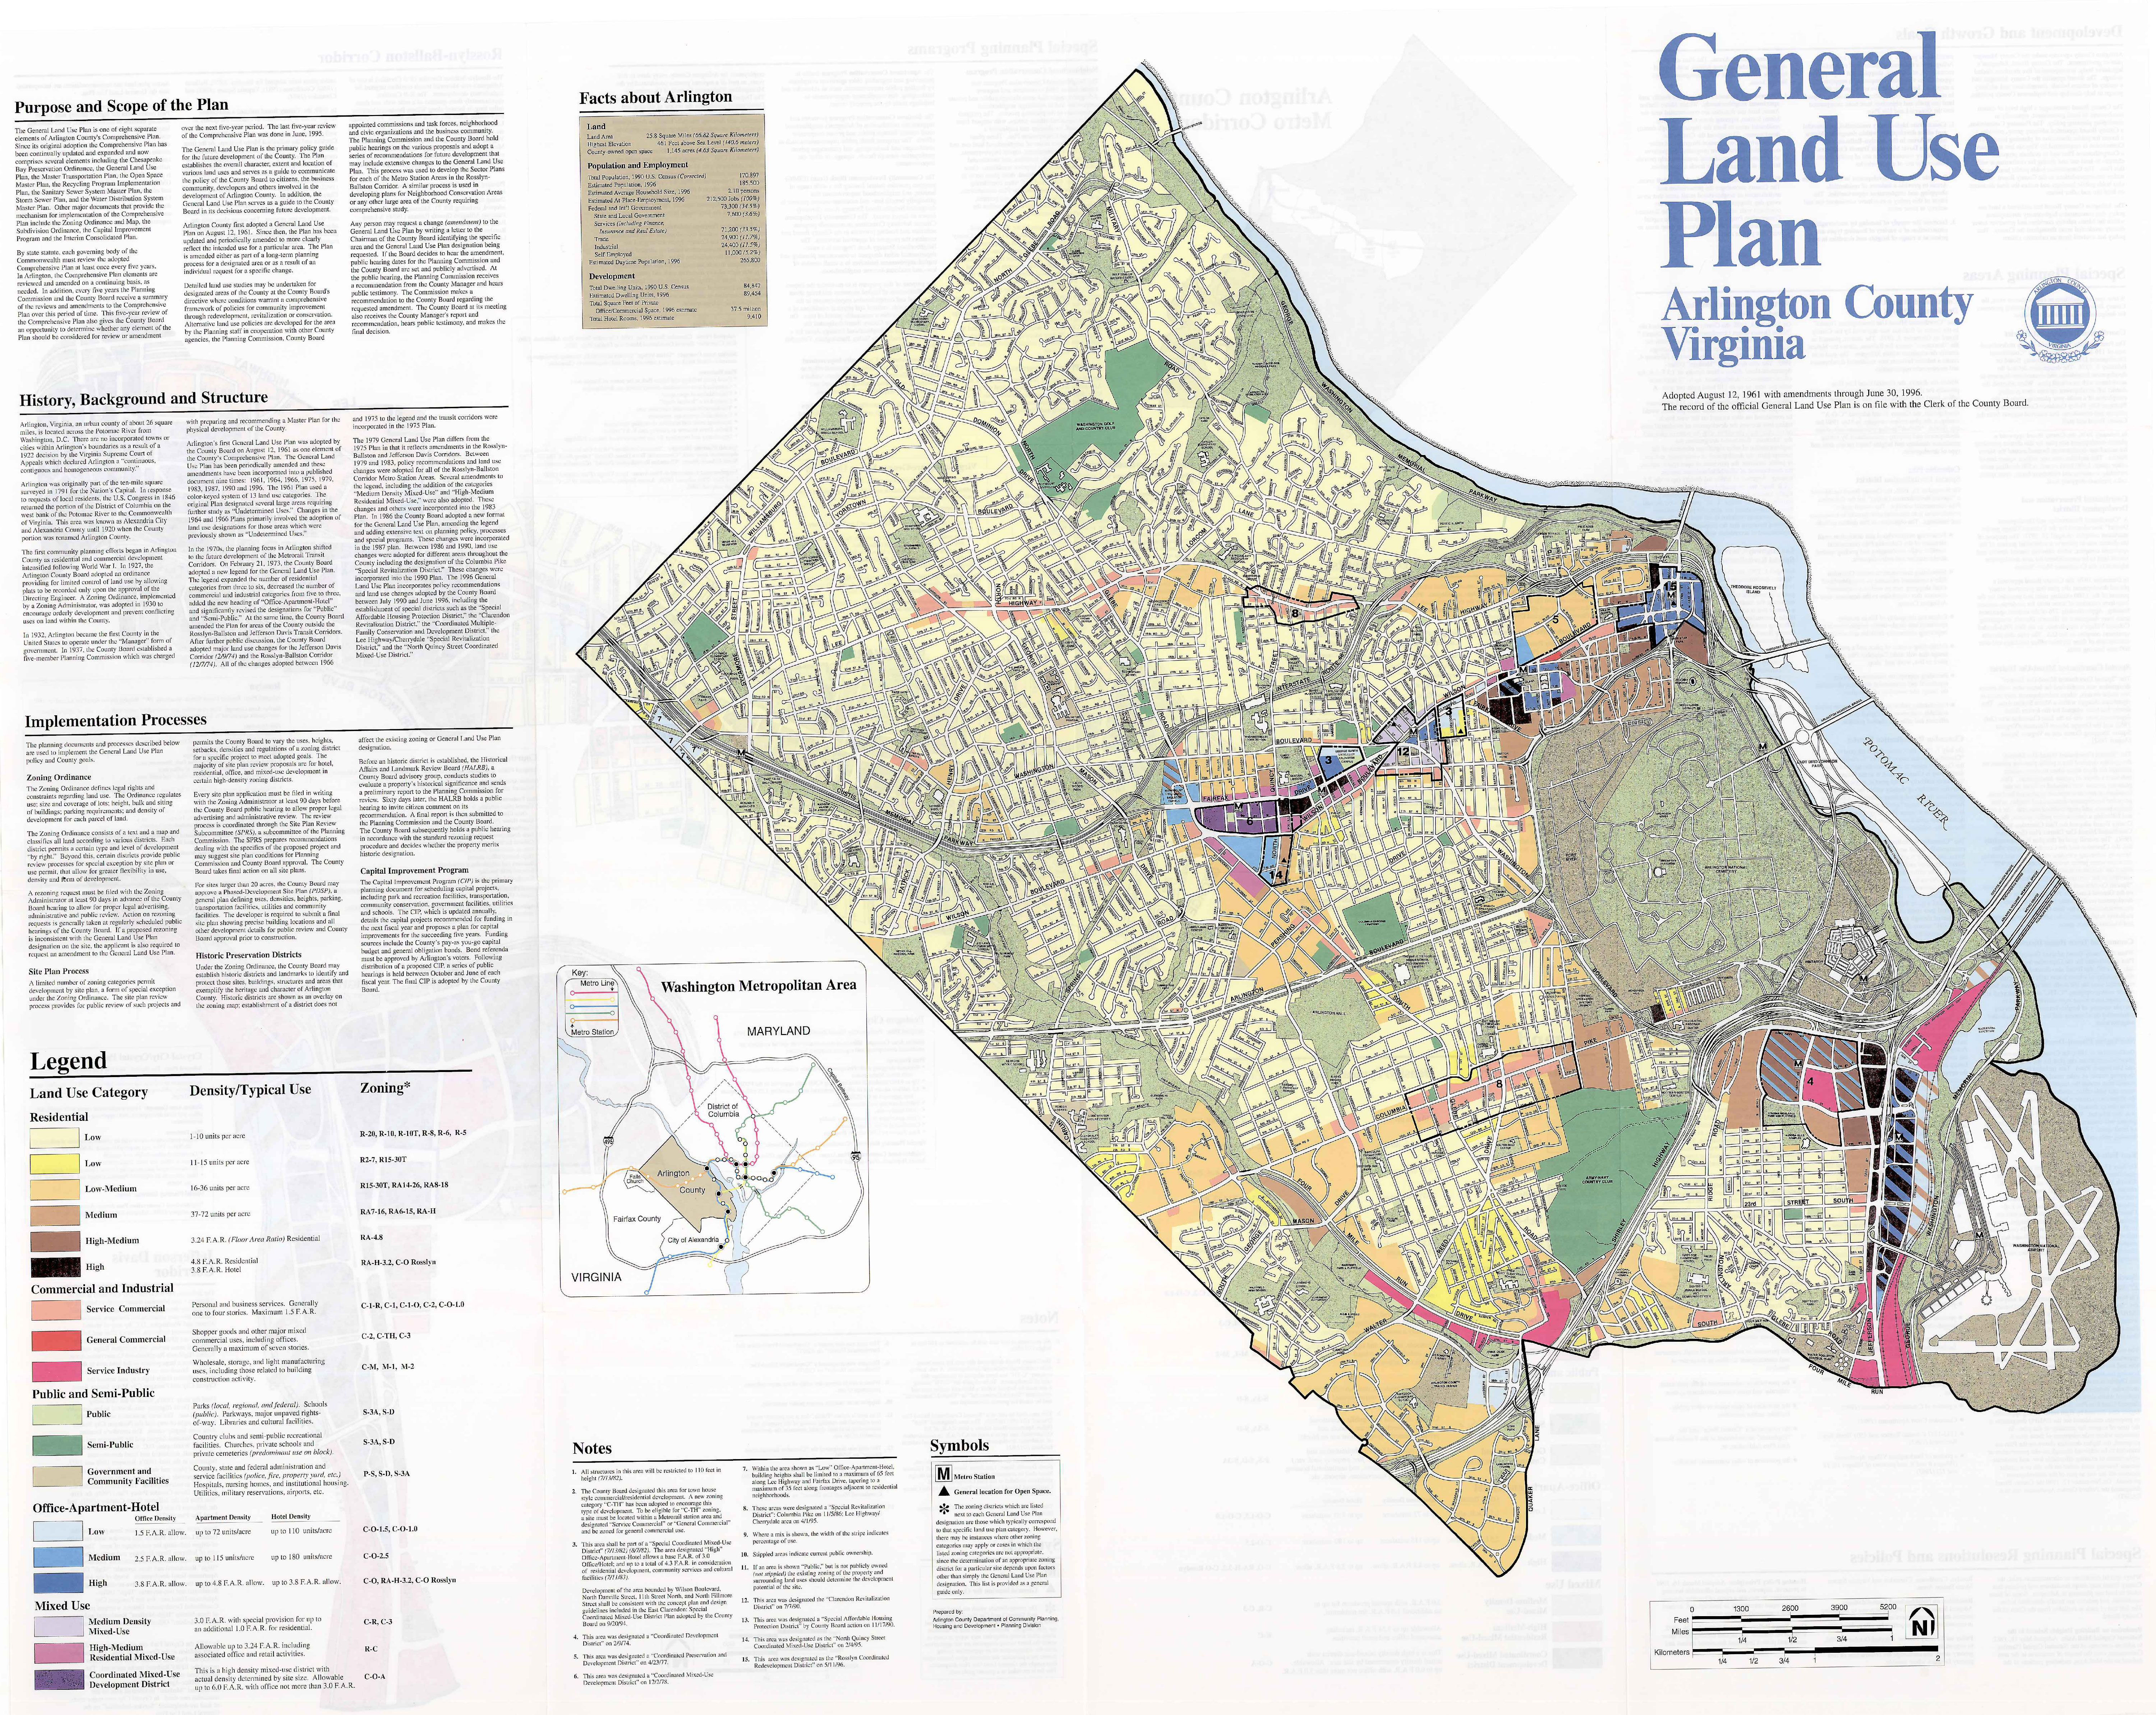 Historical GLUP Maps Projects amp Planning